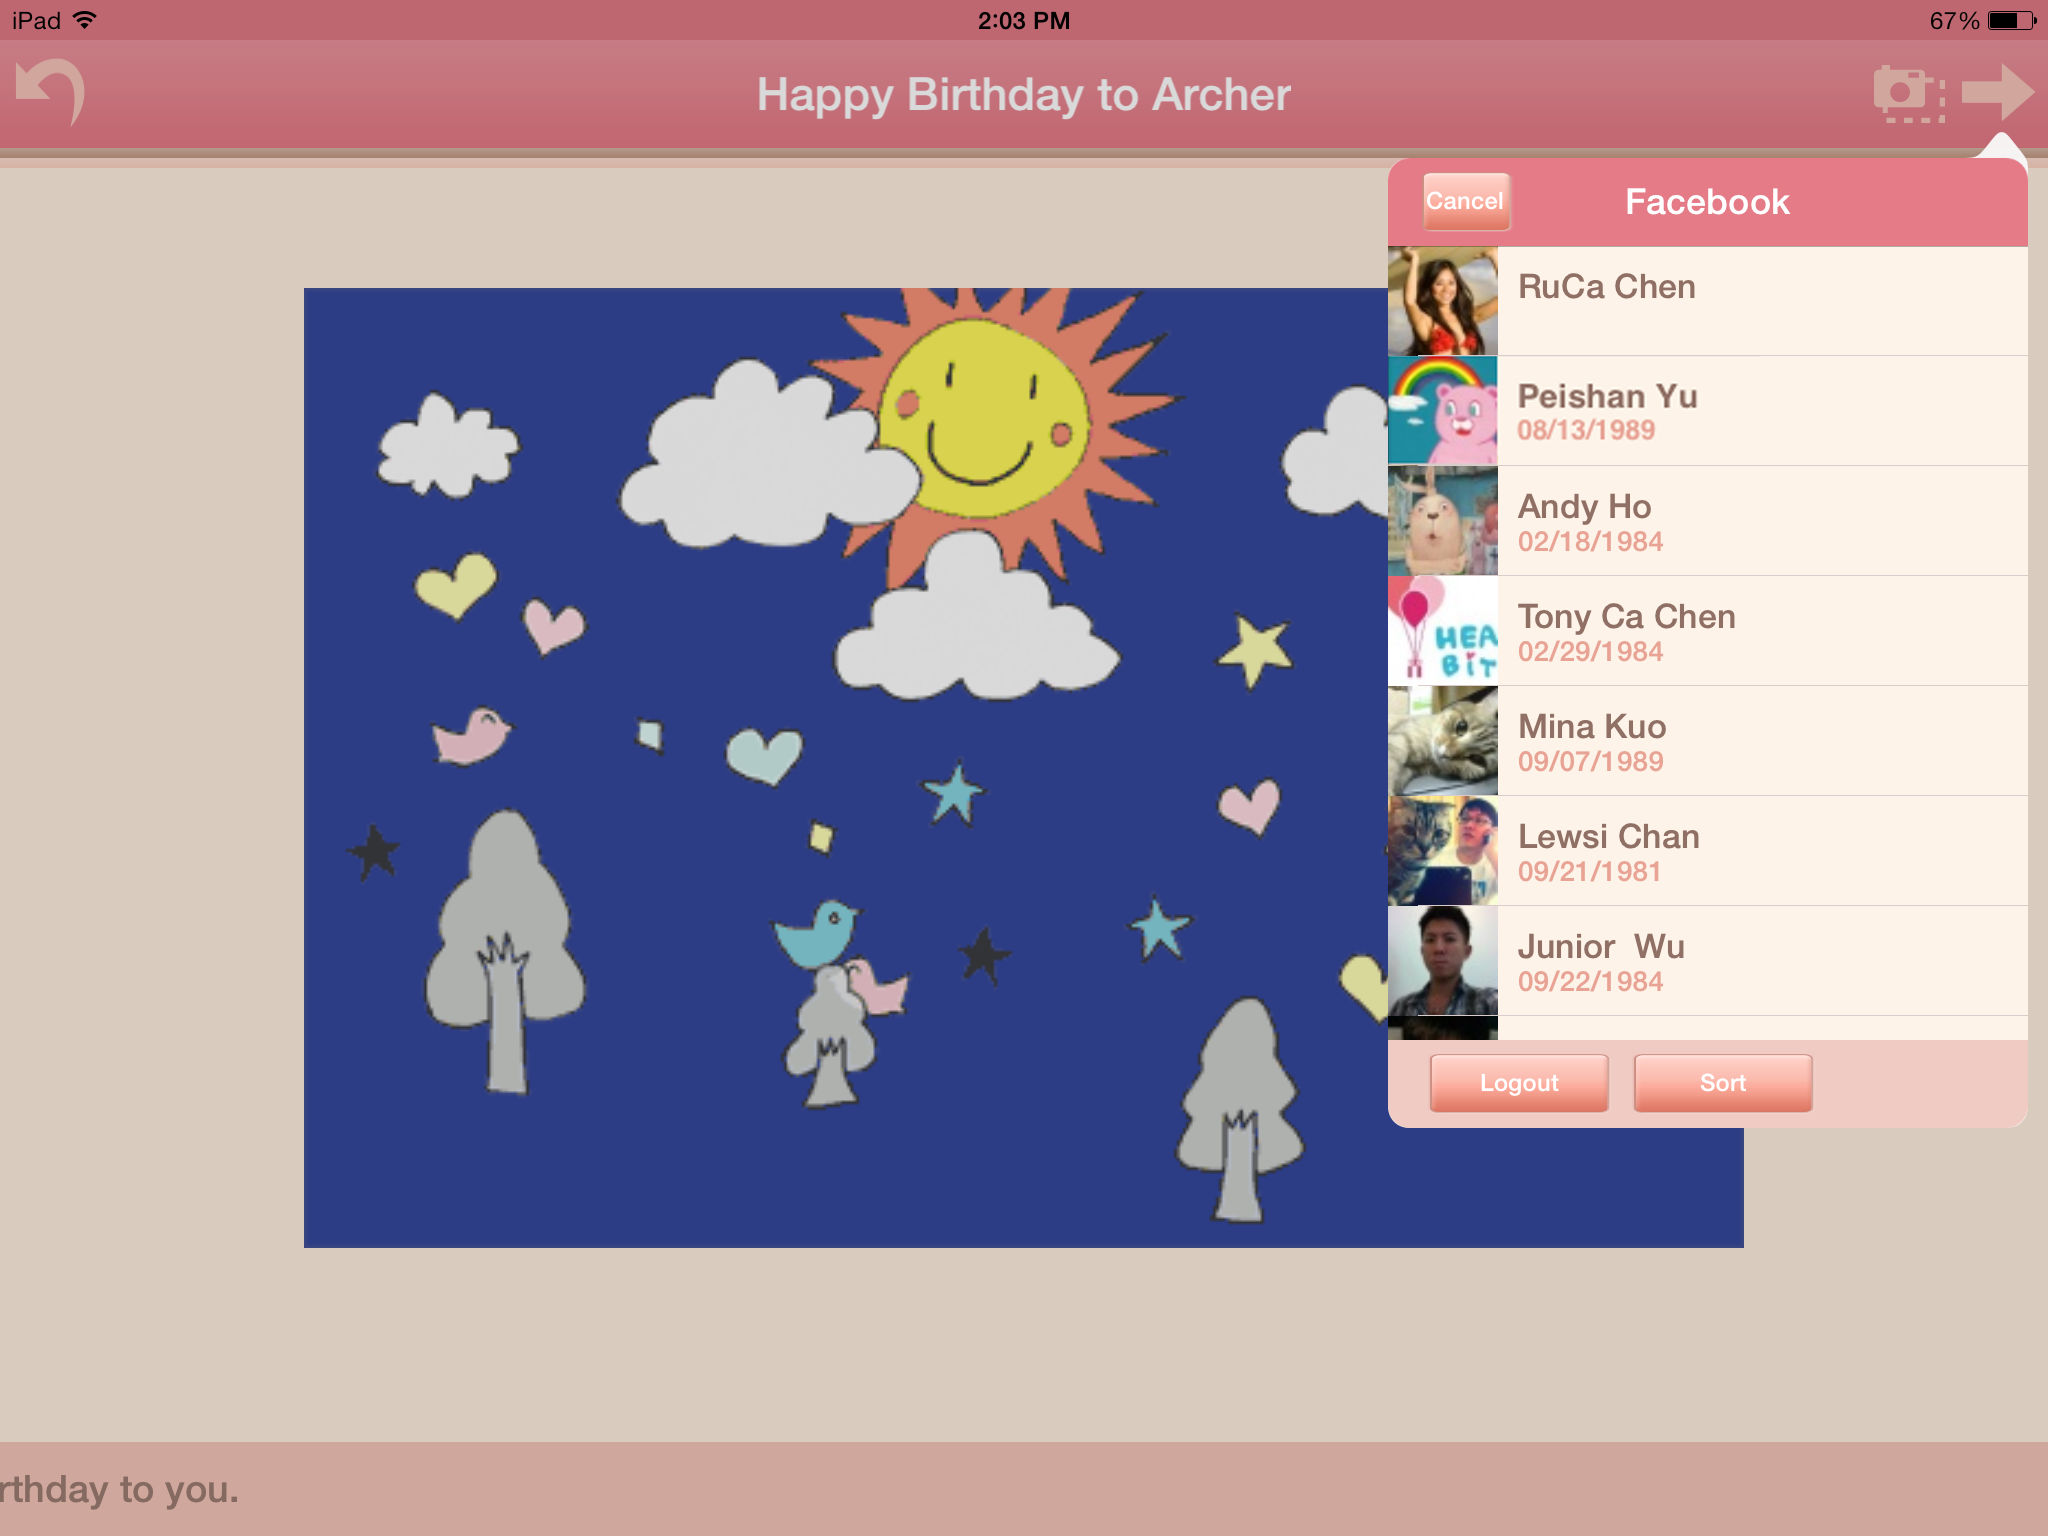 HeartyBit Animated greeting cards support munities sharing